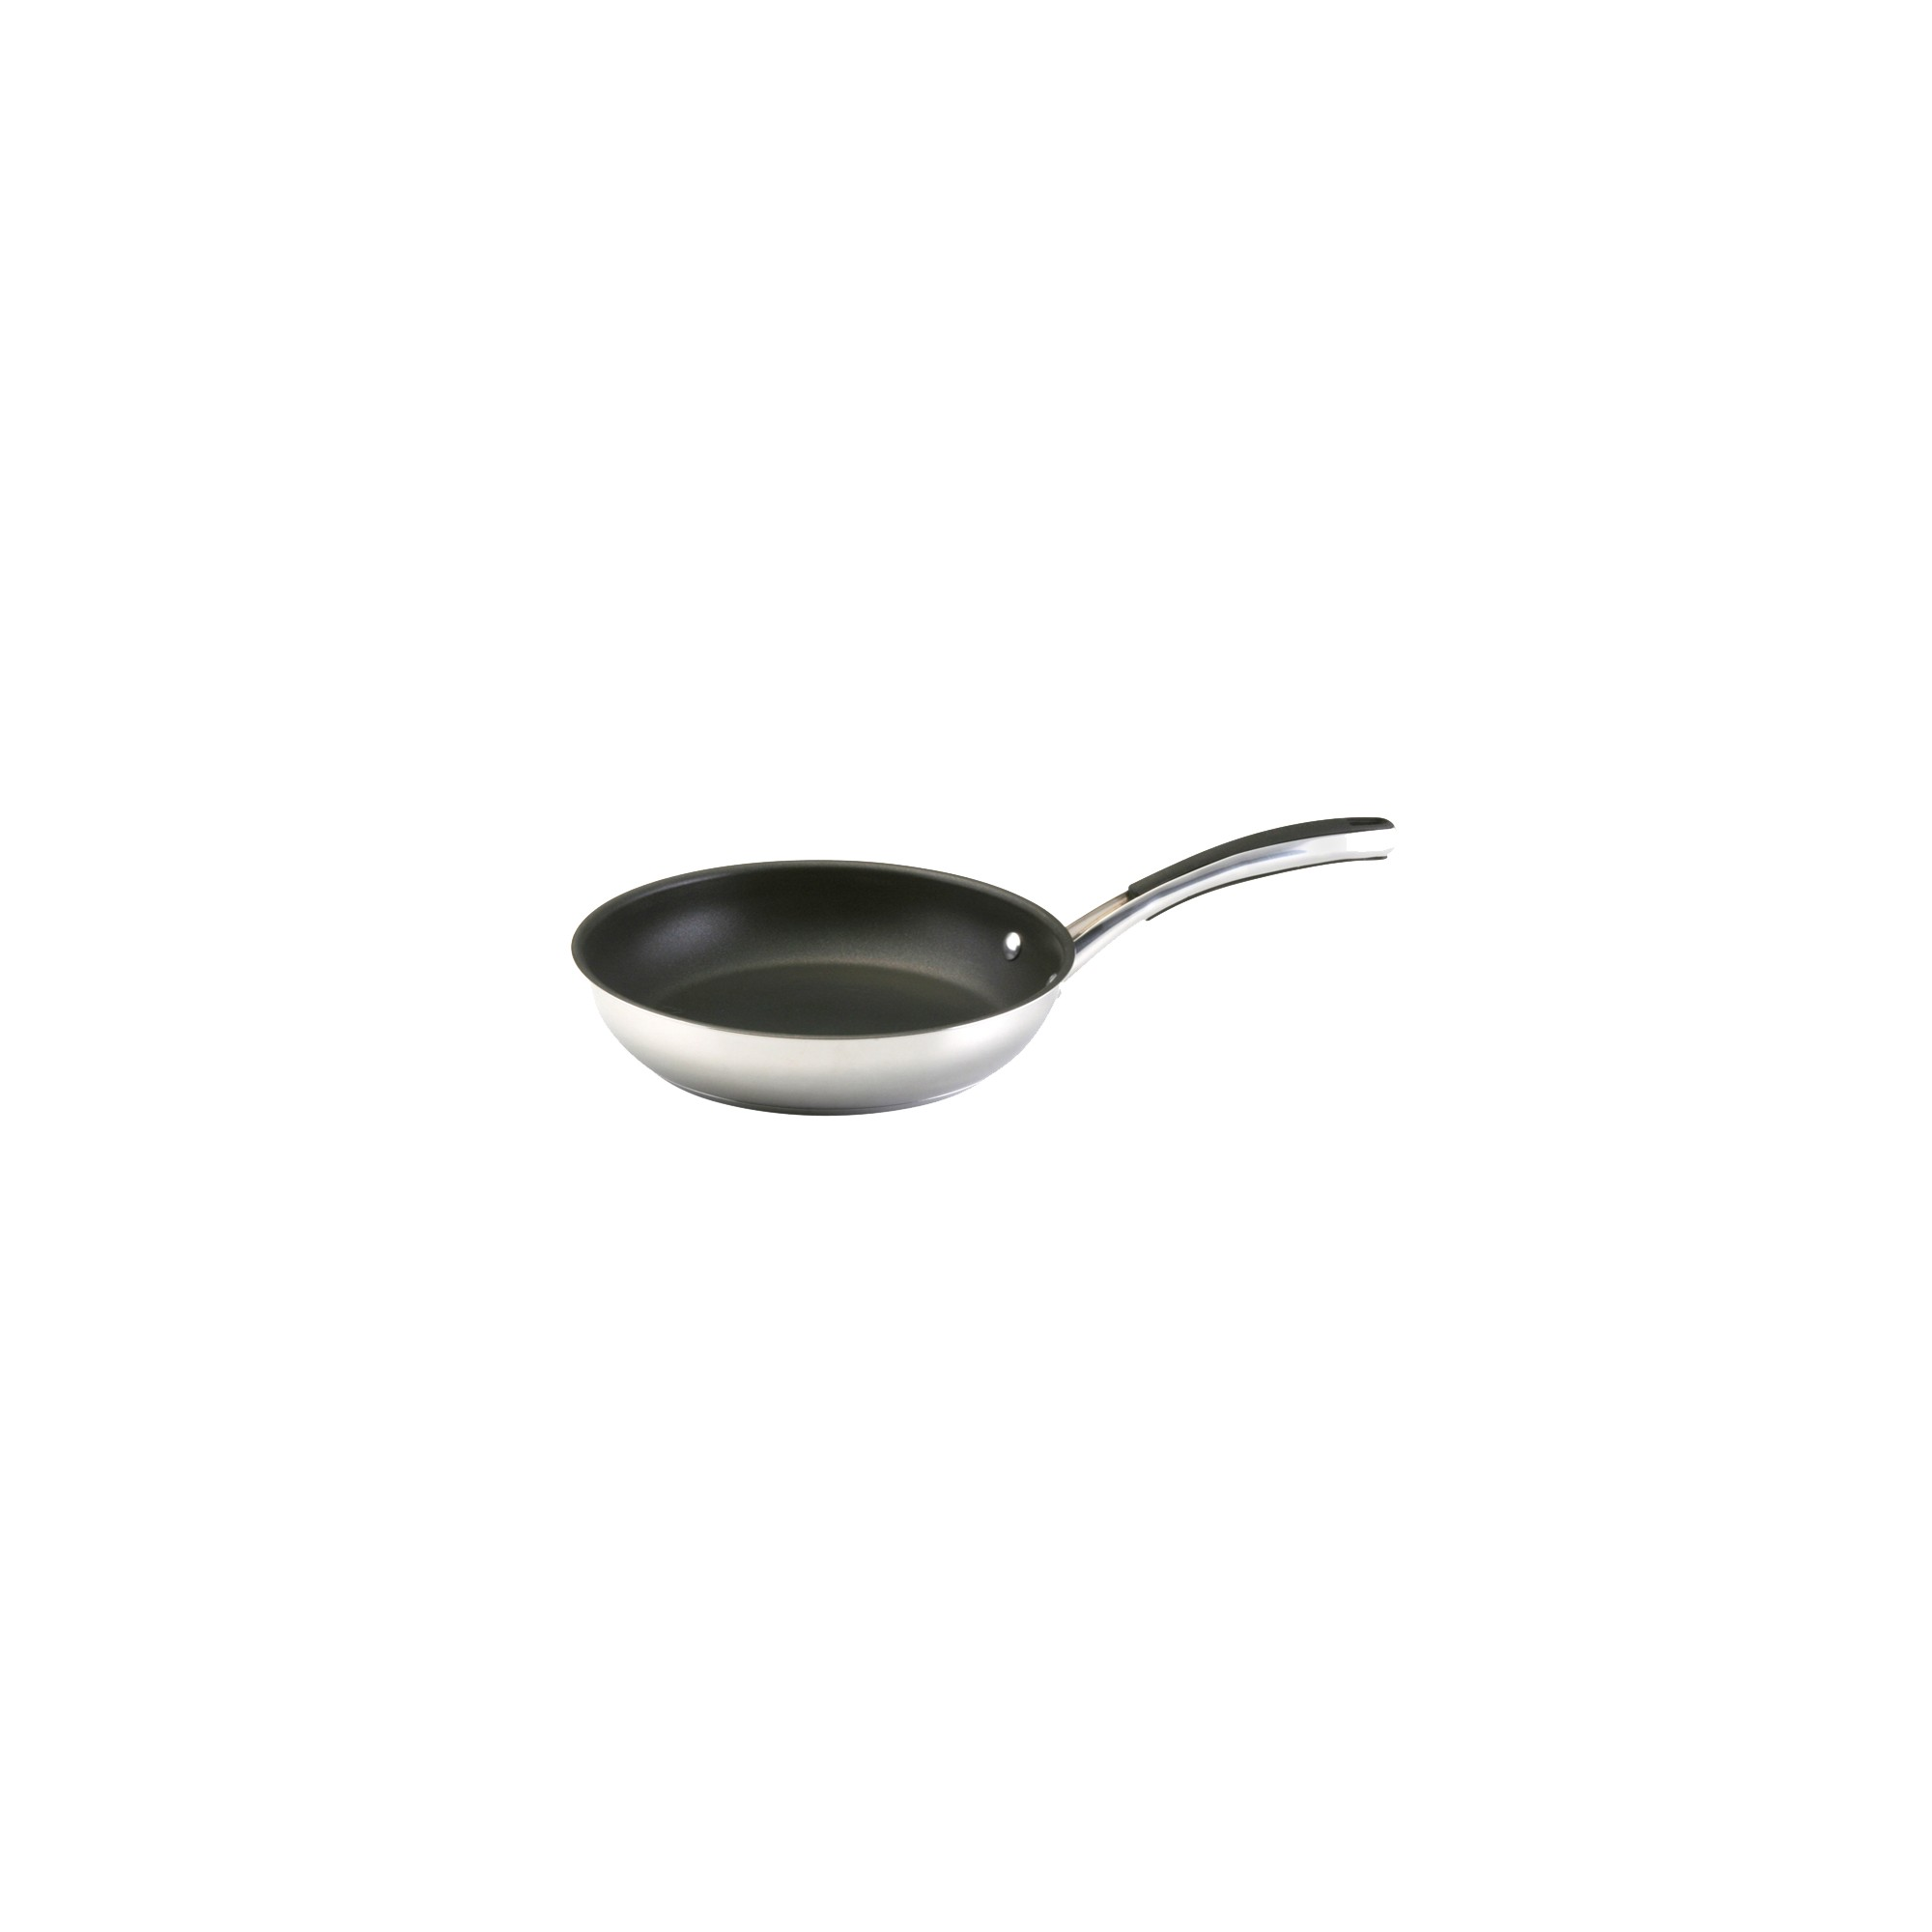 'Farberware 10'' Open Non-Stick Skillet'